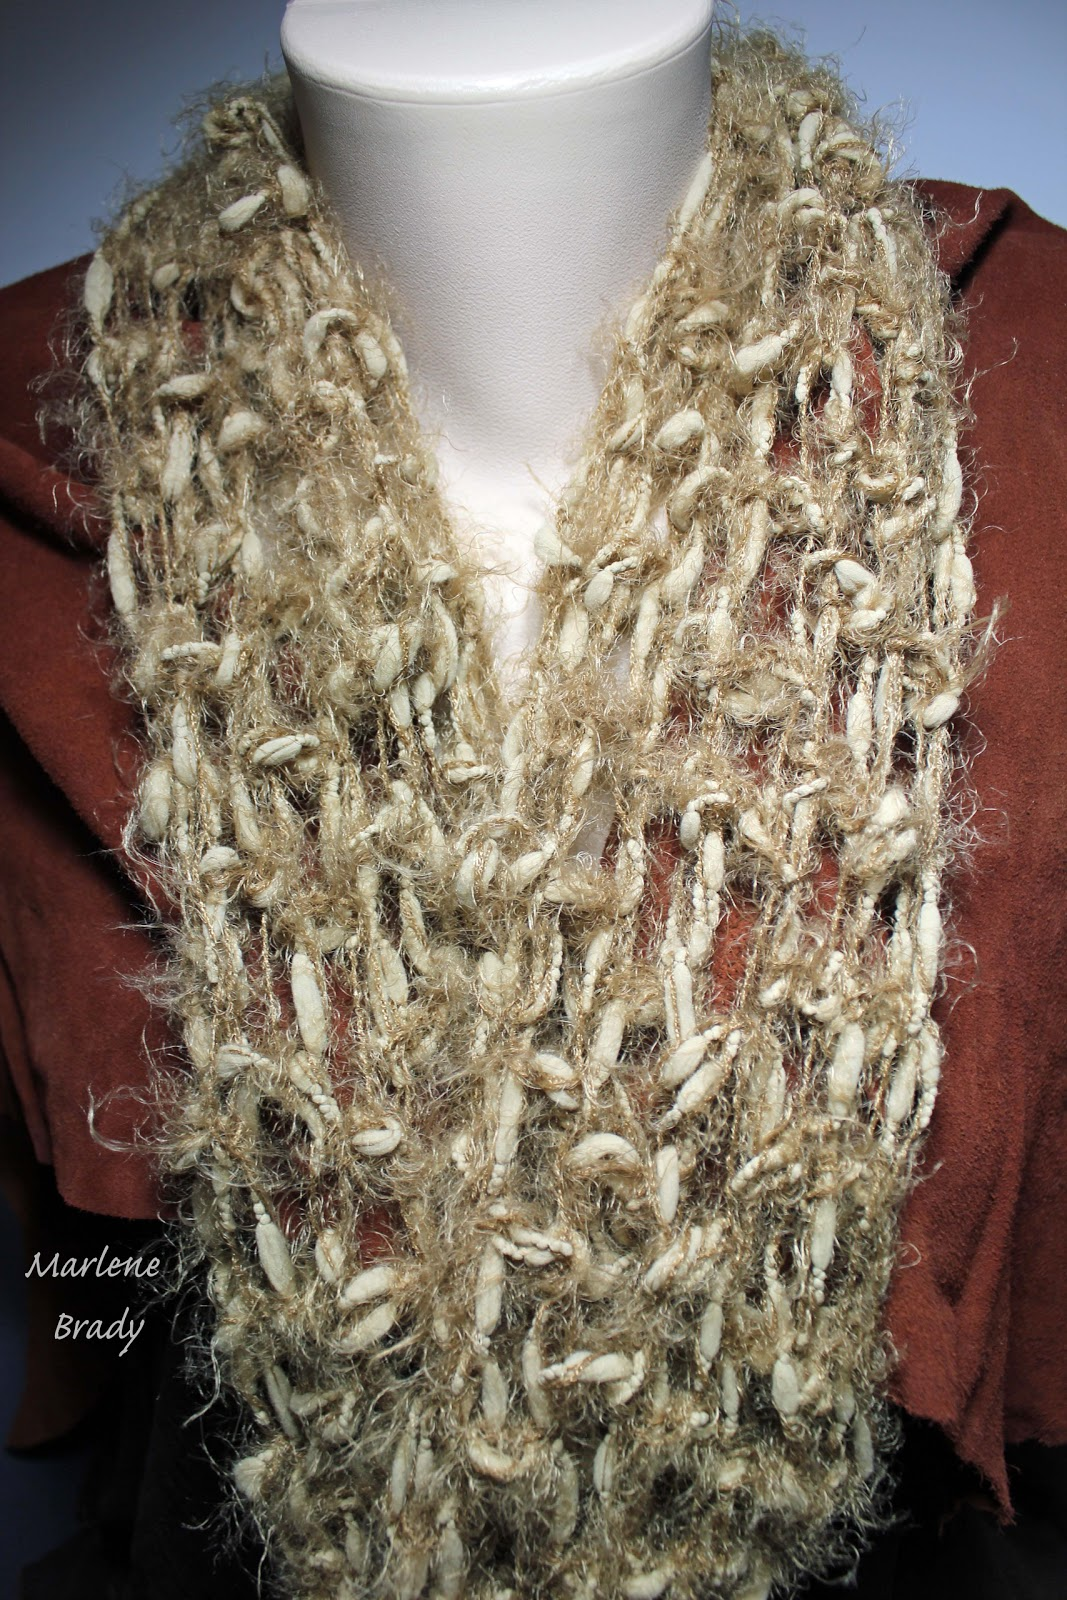 Double Crochet : Marlene Brady: Foundation-Less Double Crochet